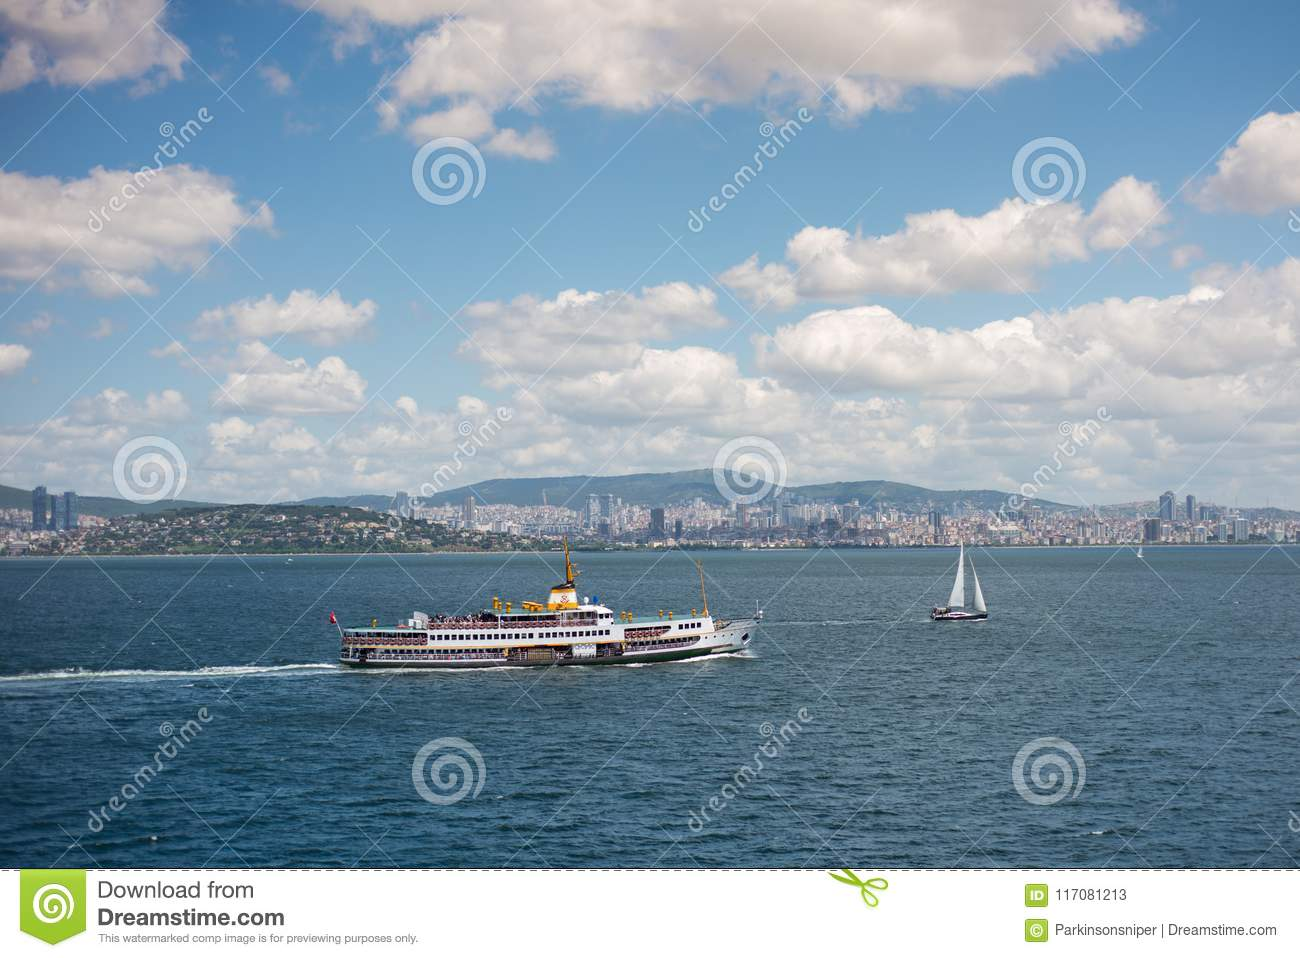 Istanbul Seascape with Ferry and Boat